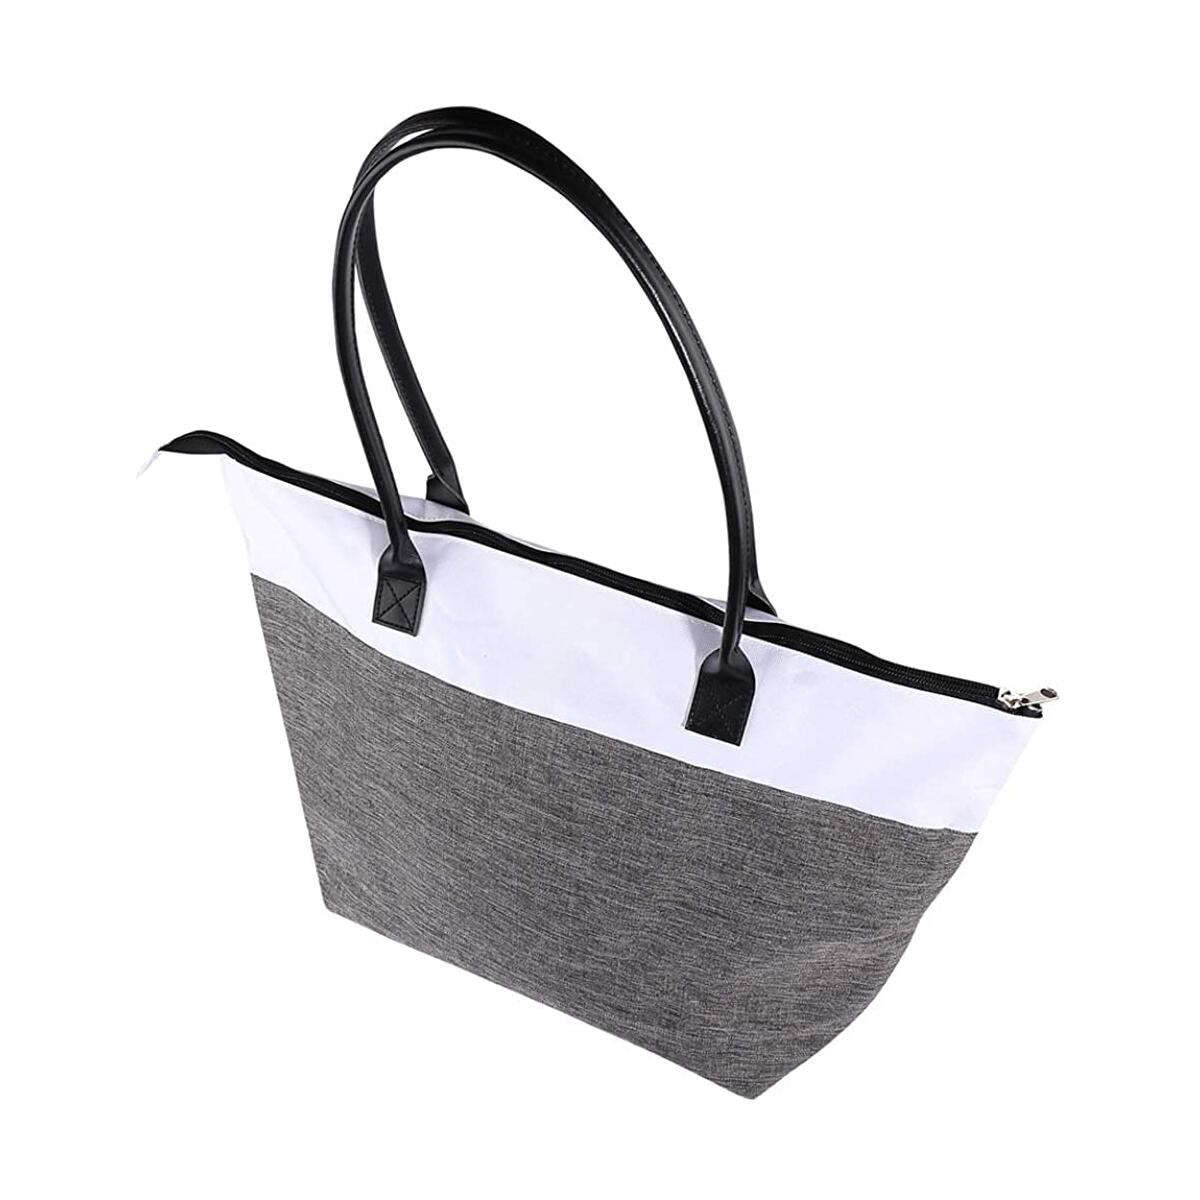 Tote Bag for Women Canvas Tote Handbags Leather Handle Water Resistant Shoulder Purse